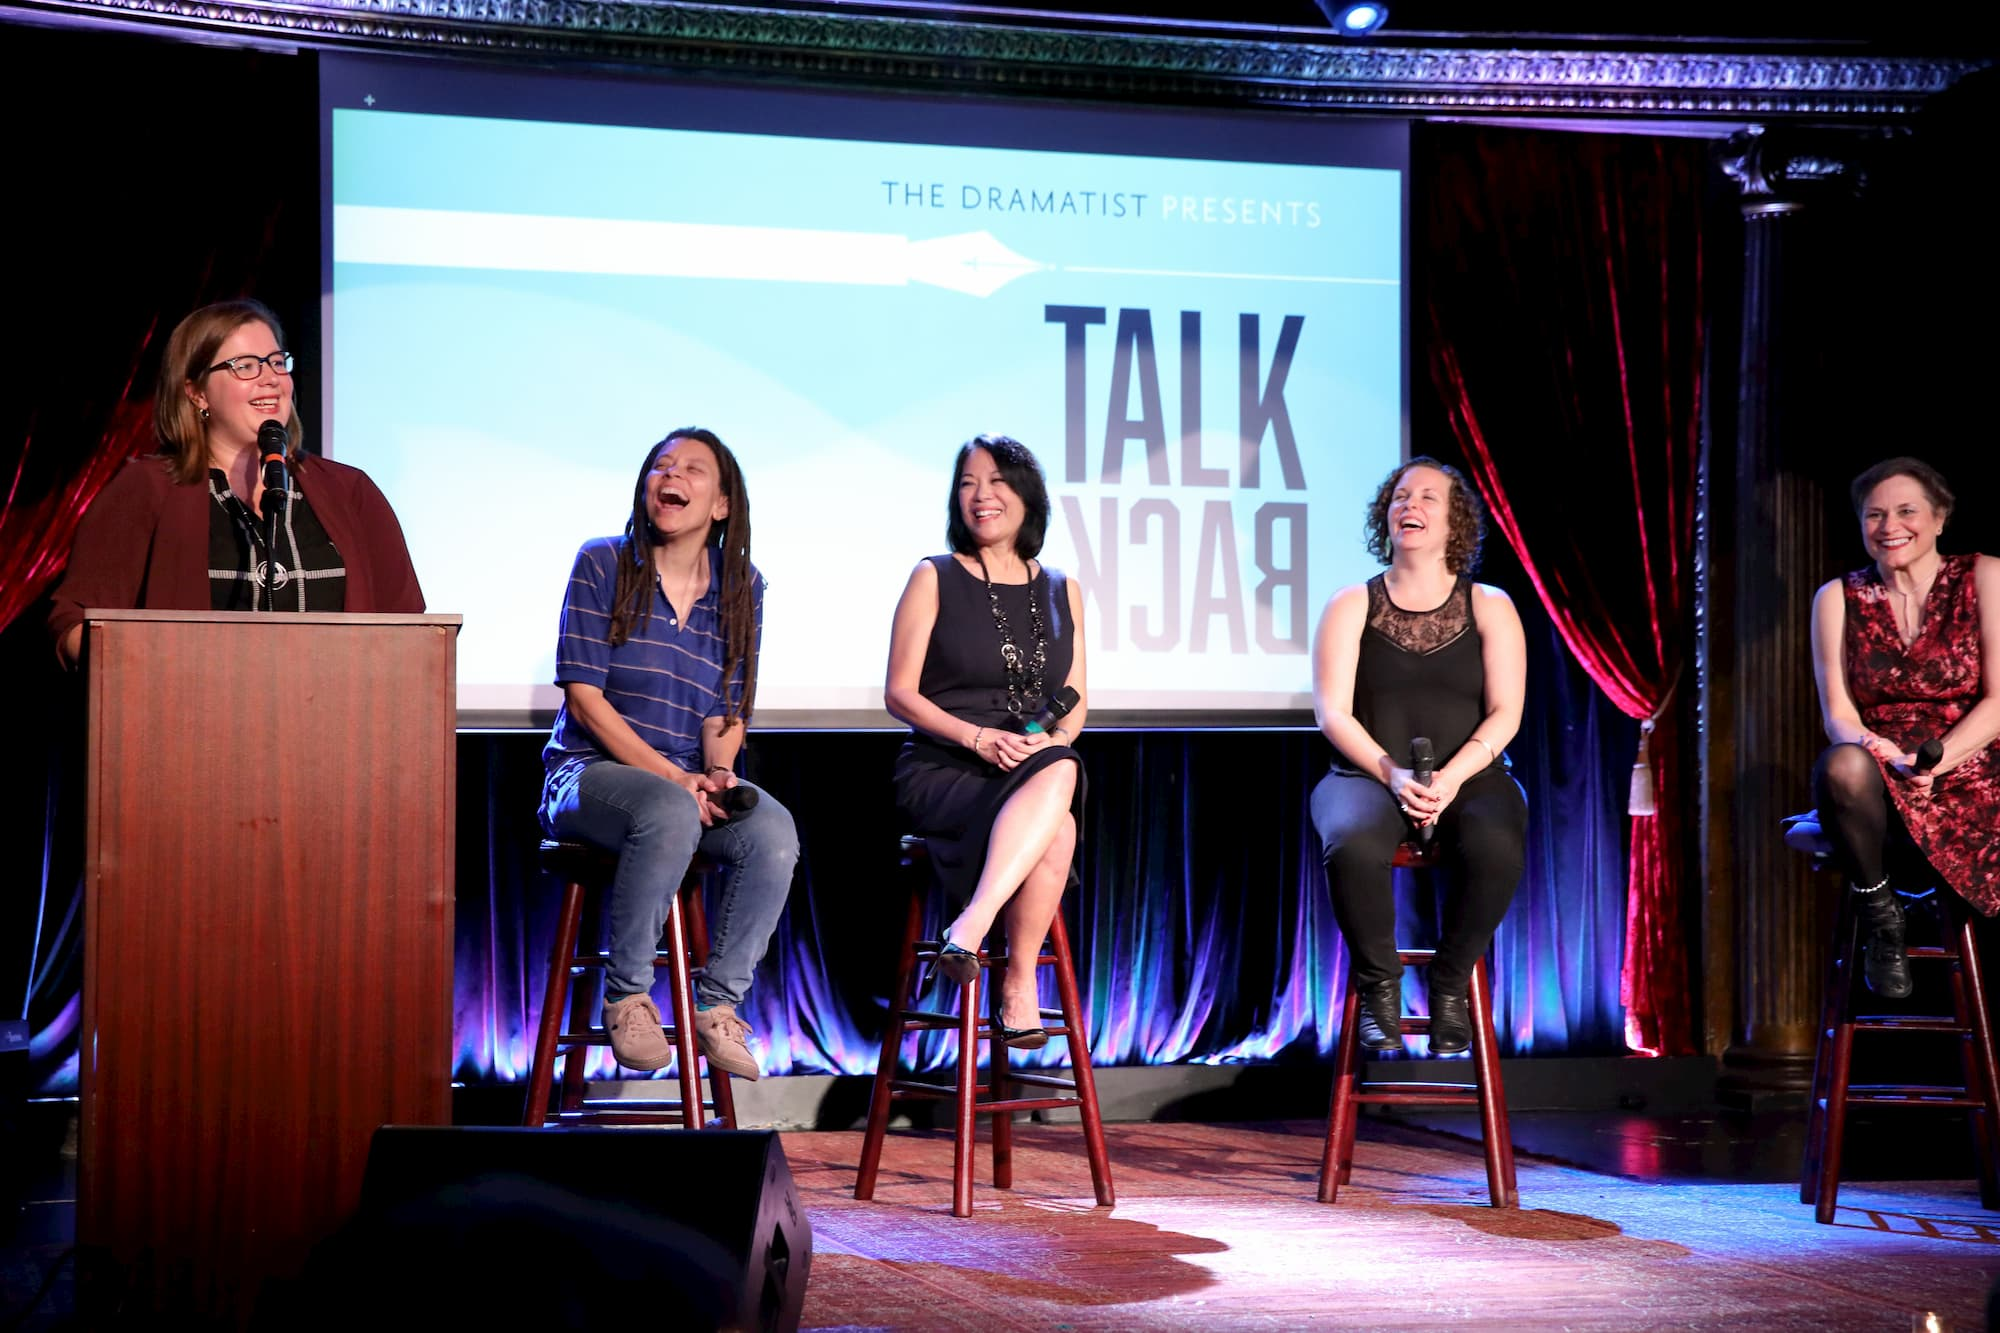 TalkBack Episode One Panelists